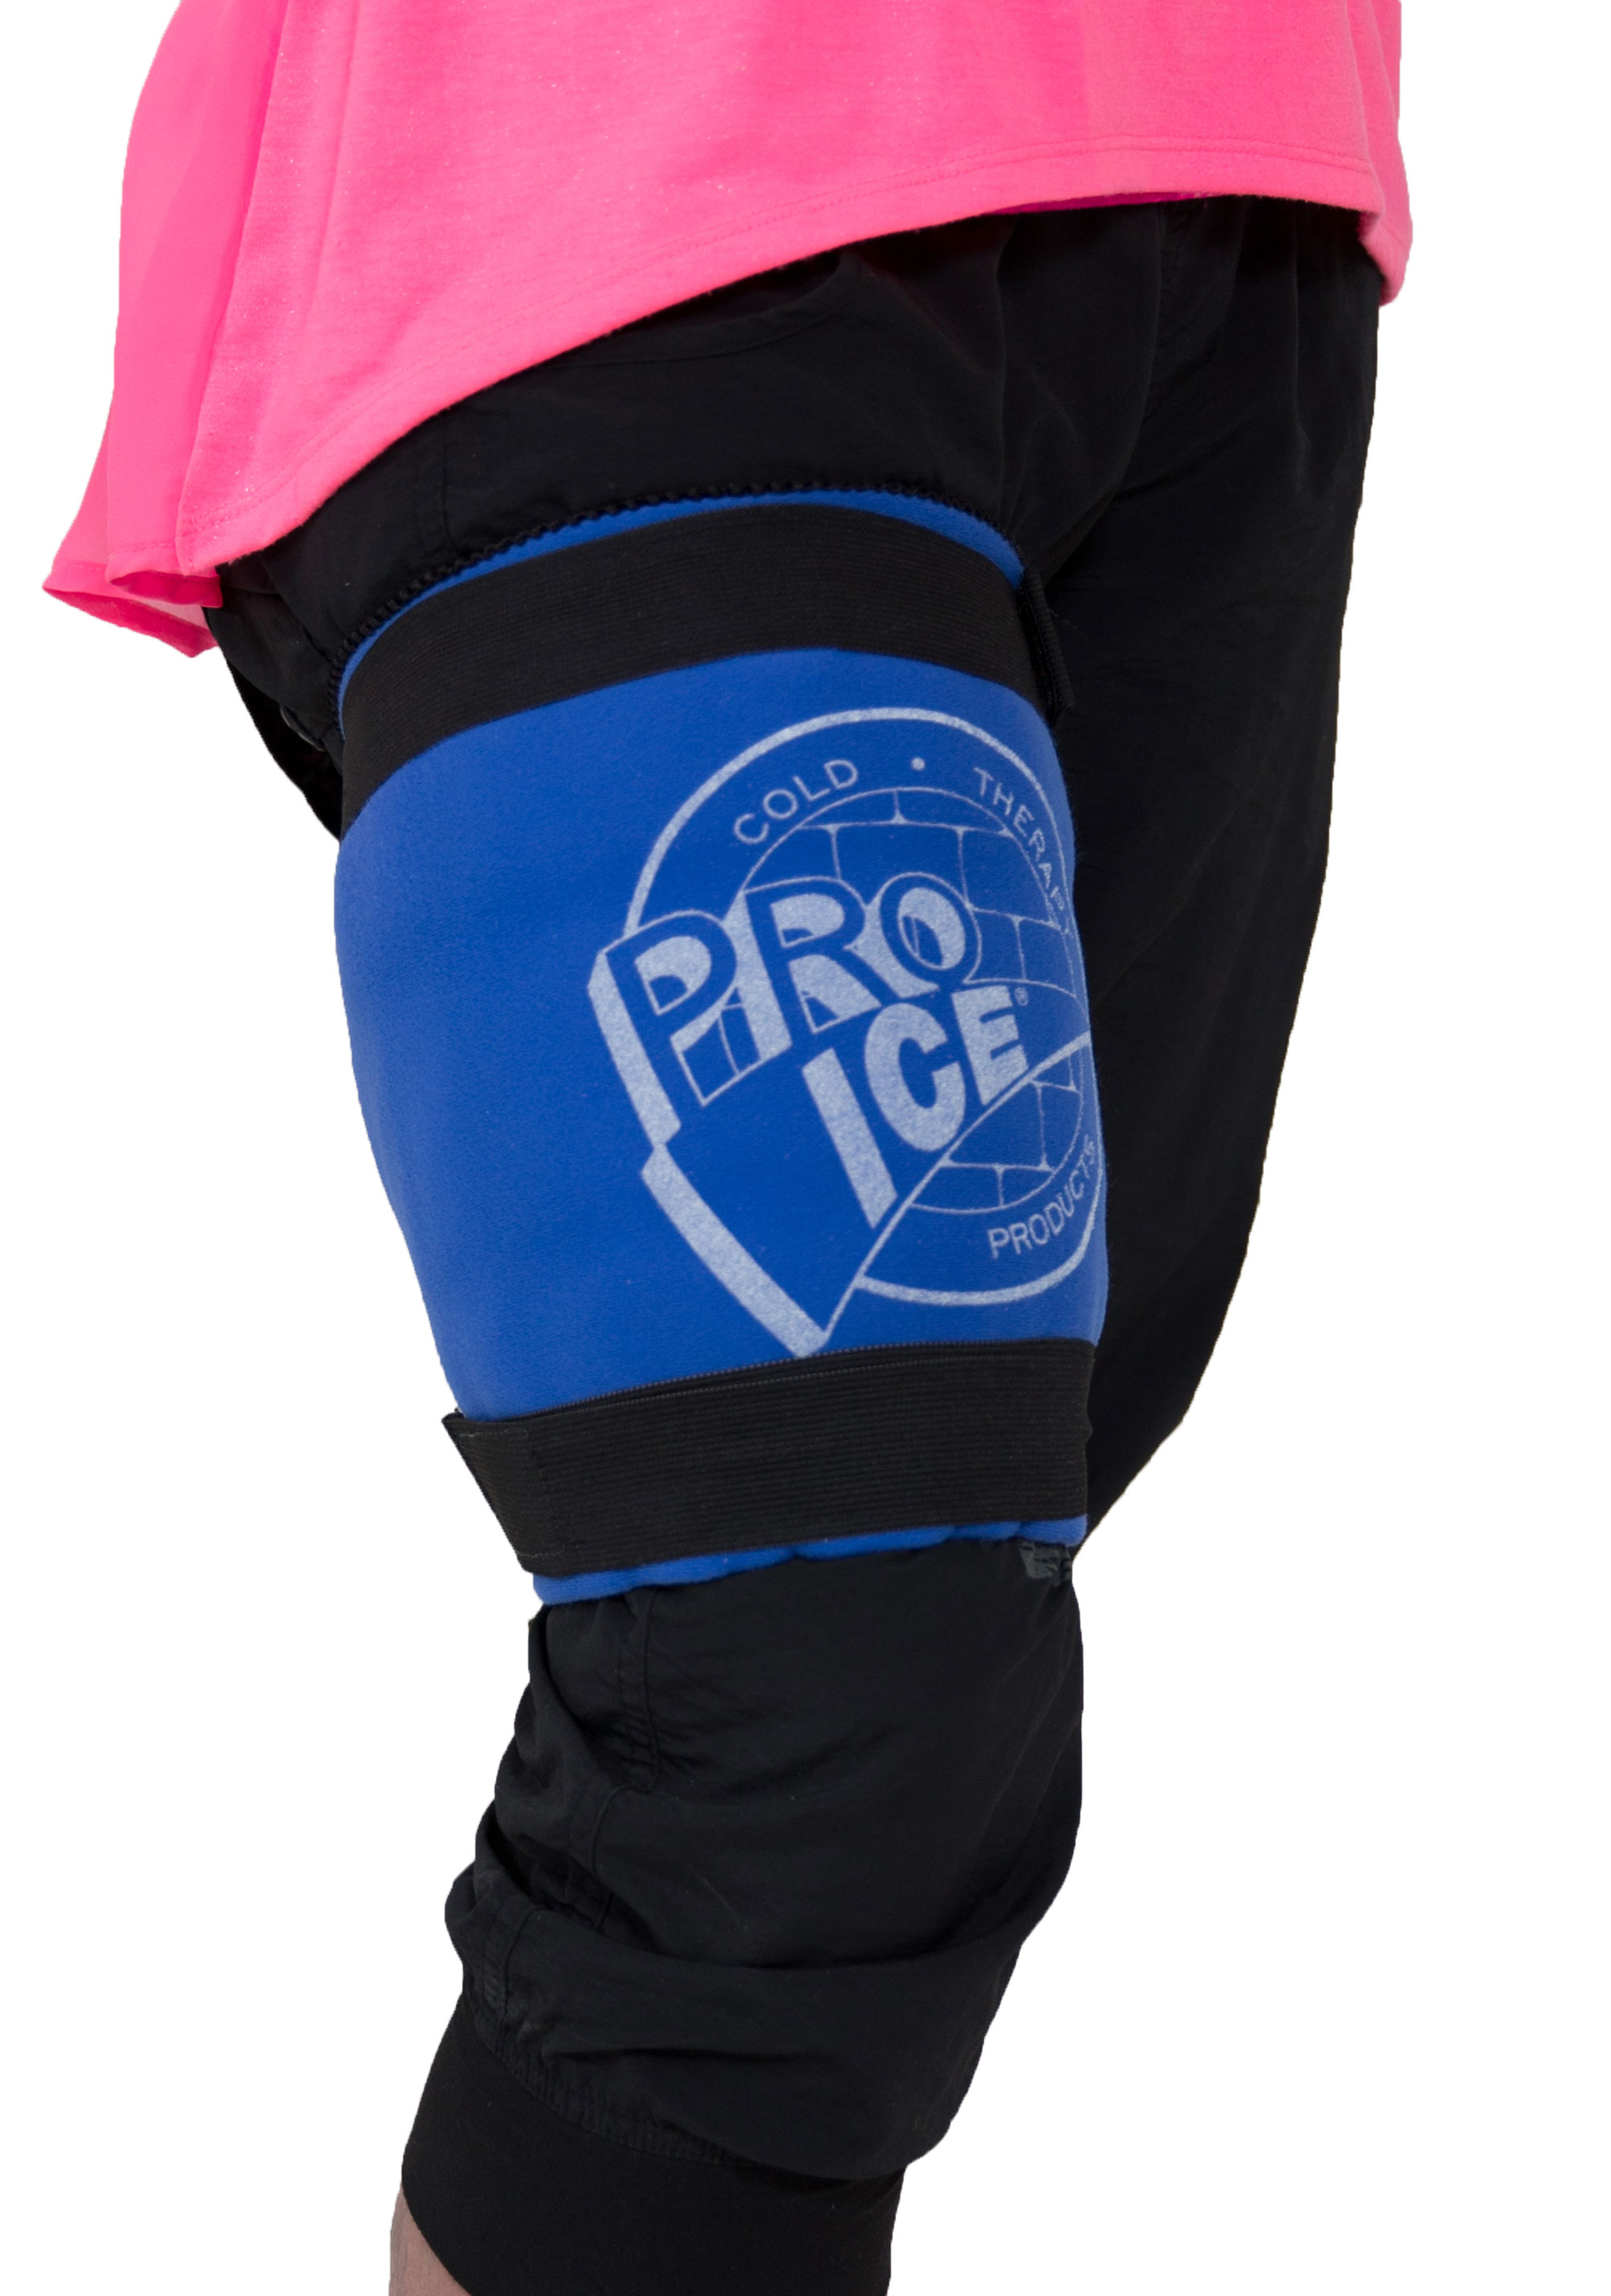 Univeral Ice Pack For Quadcriceps and Other Body Areas, by Pro Ice pi260